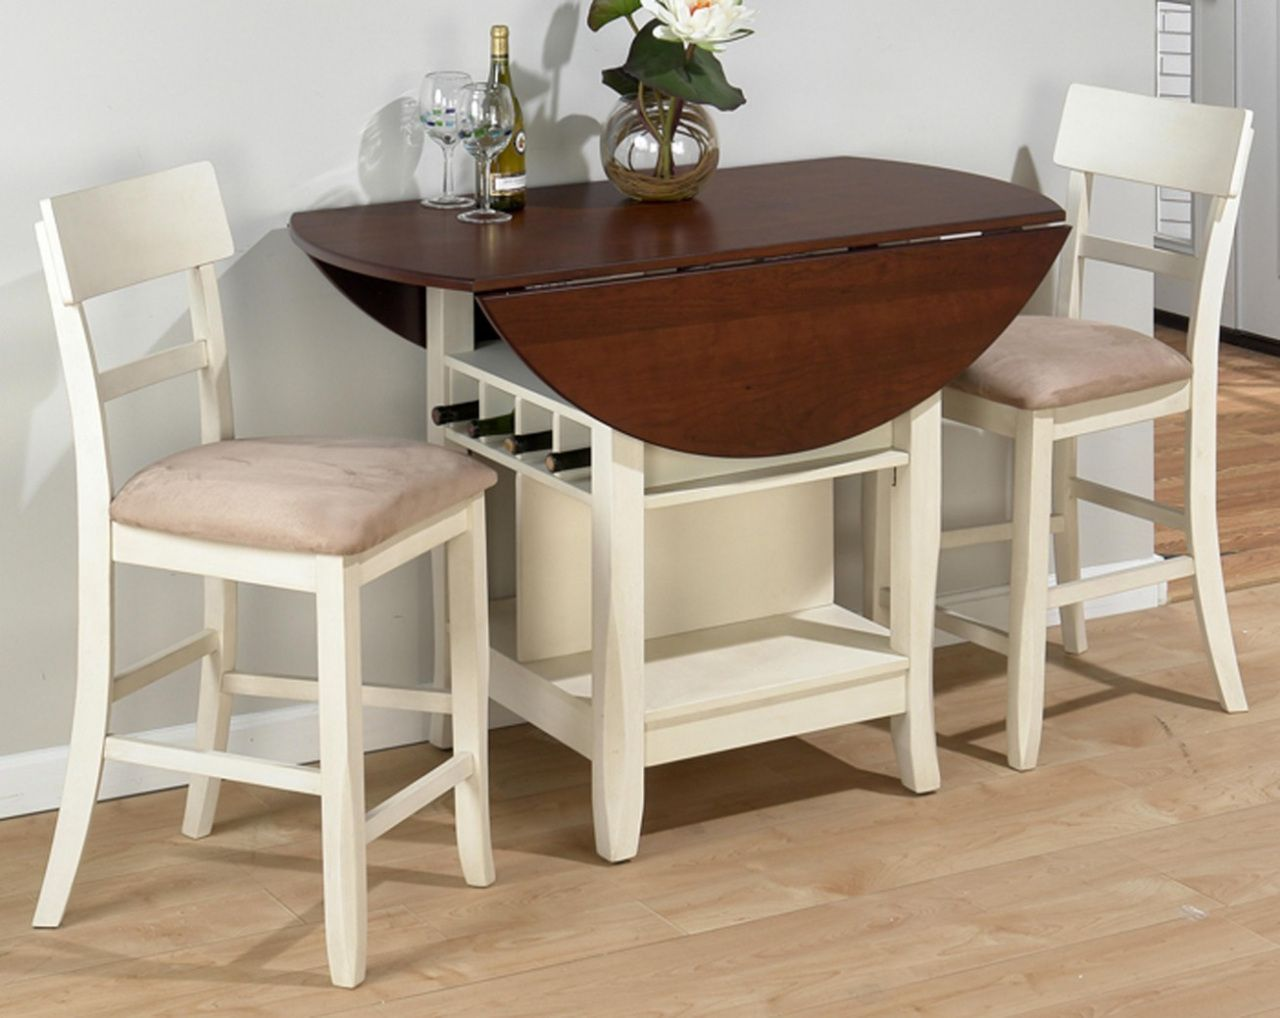 50 kitchen table and chairs for small spaces modern used rh pinterest co uk